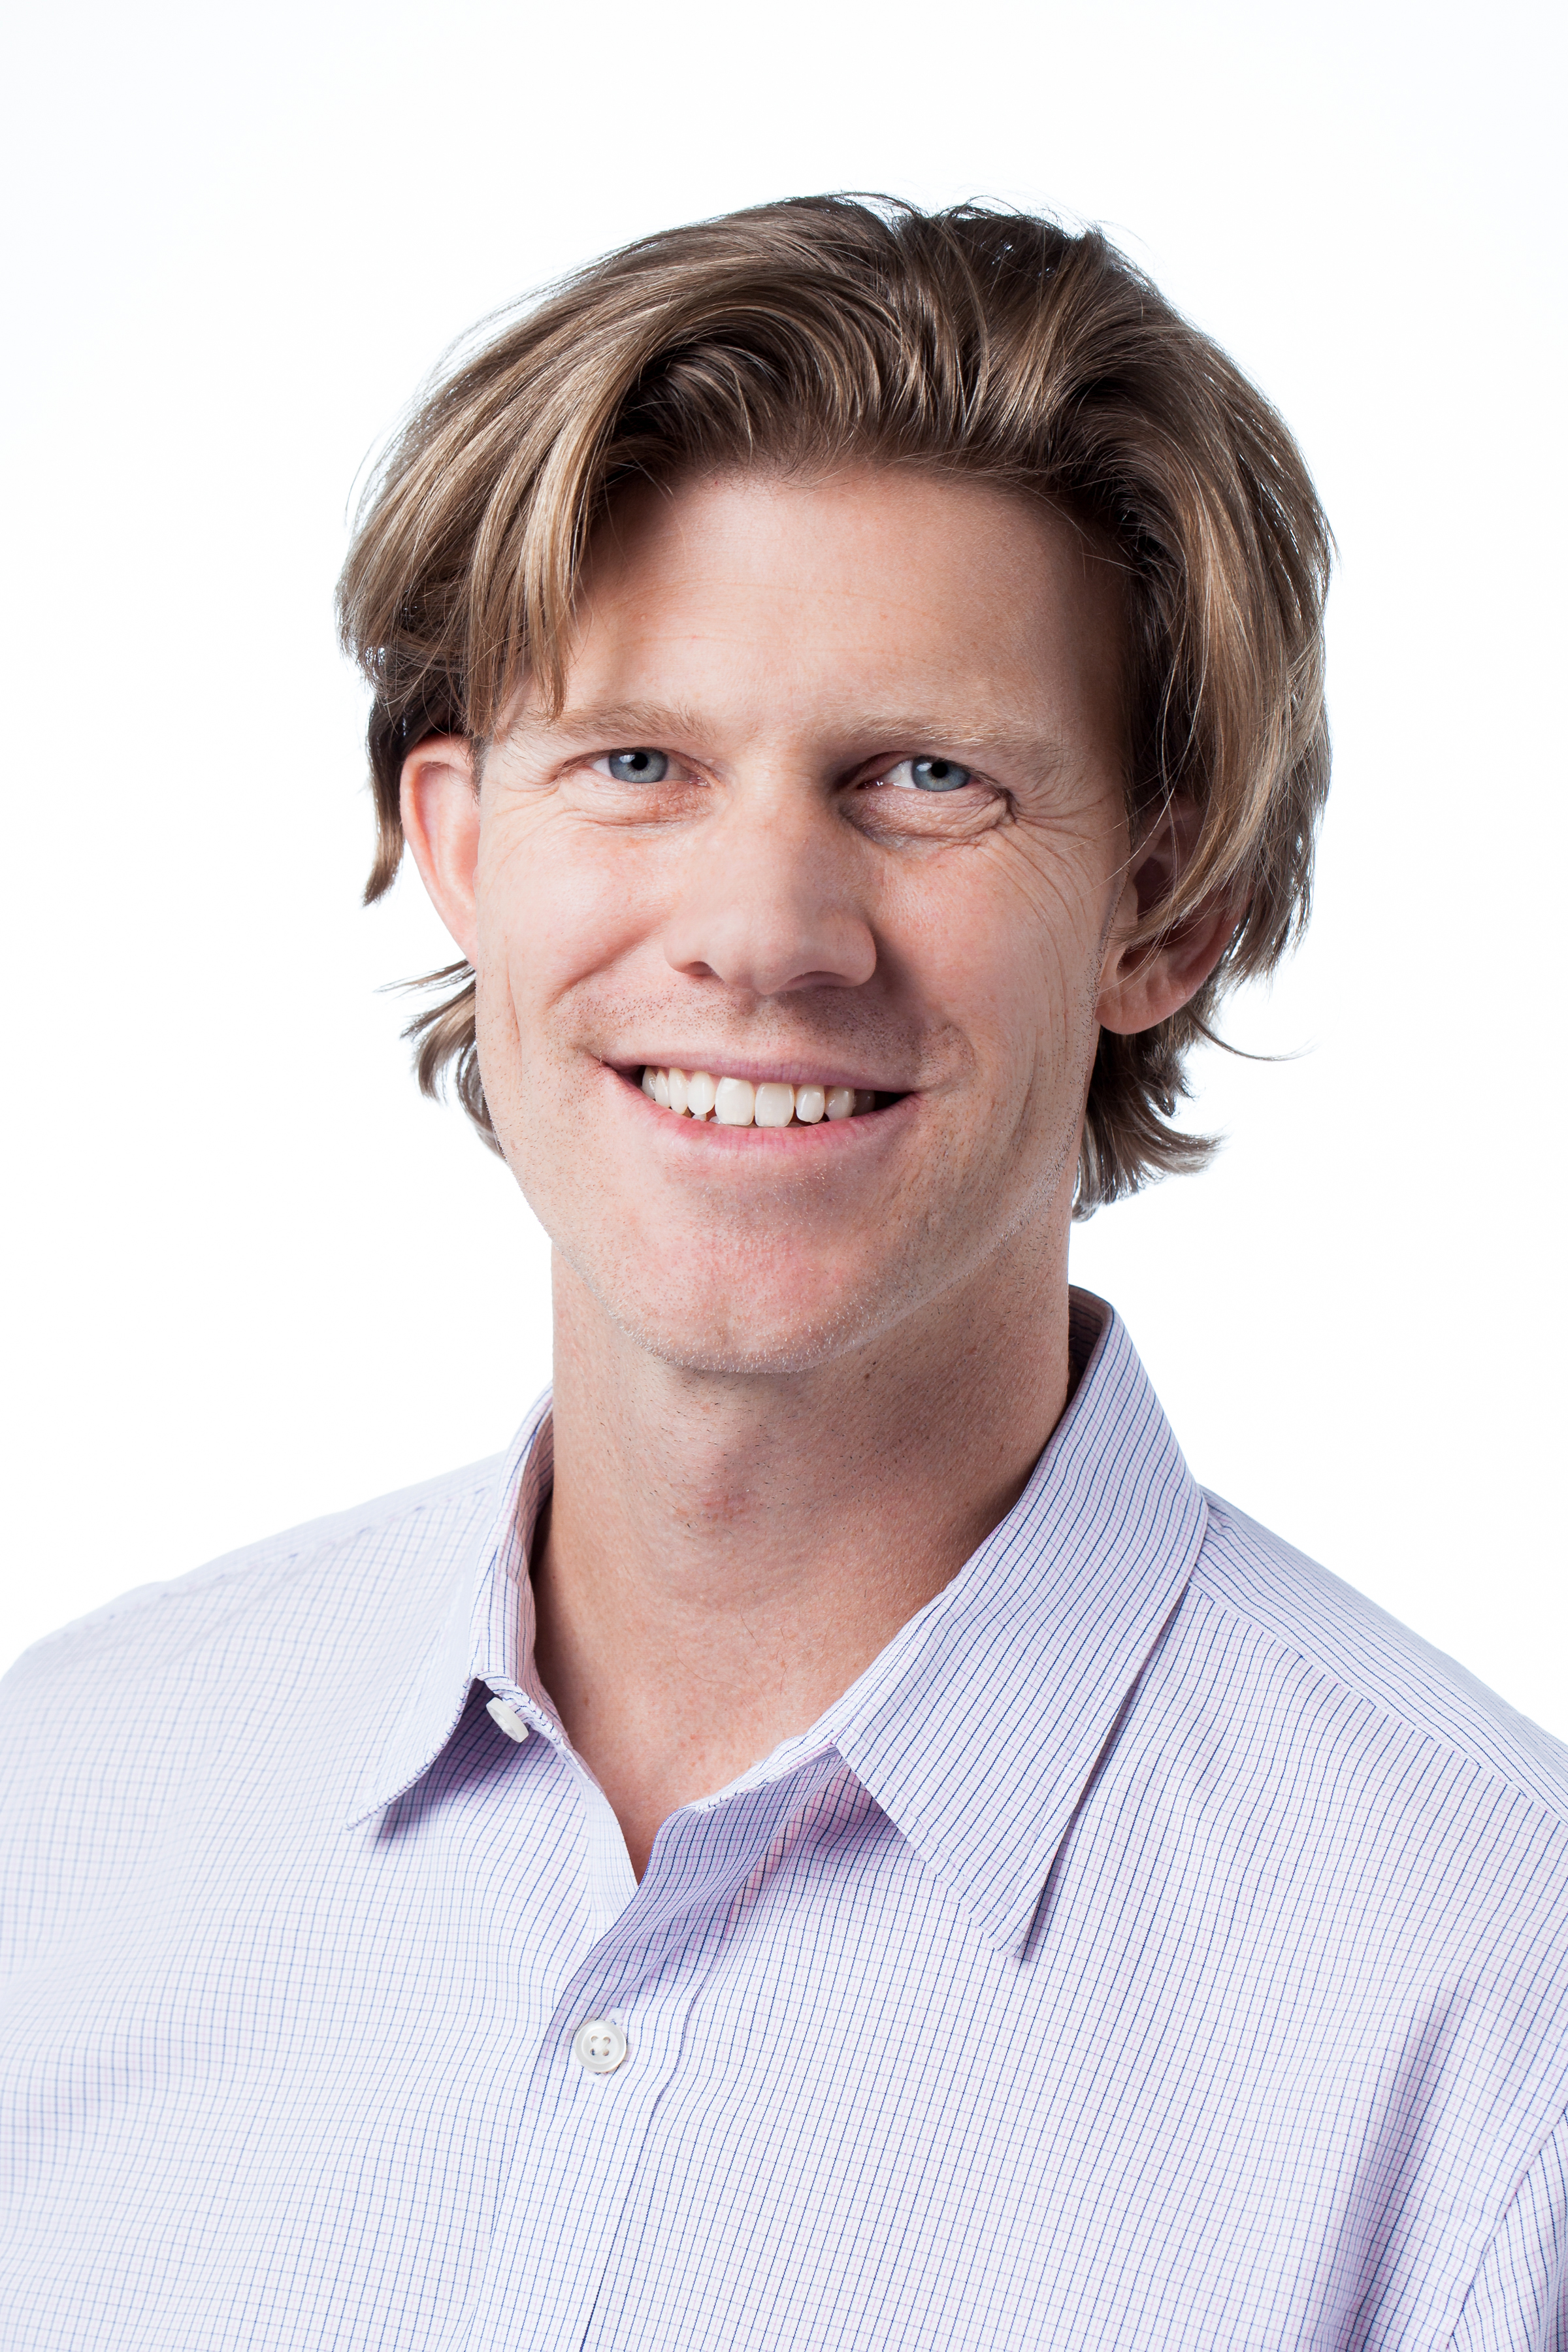 Joel inman , Founder and CEO, Lexicon travel Technologies